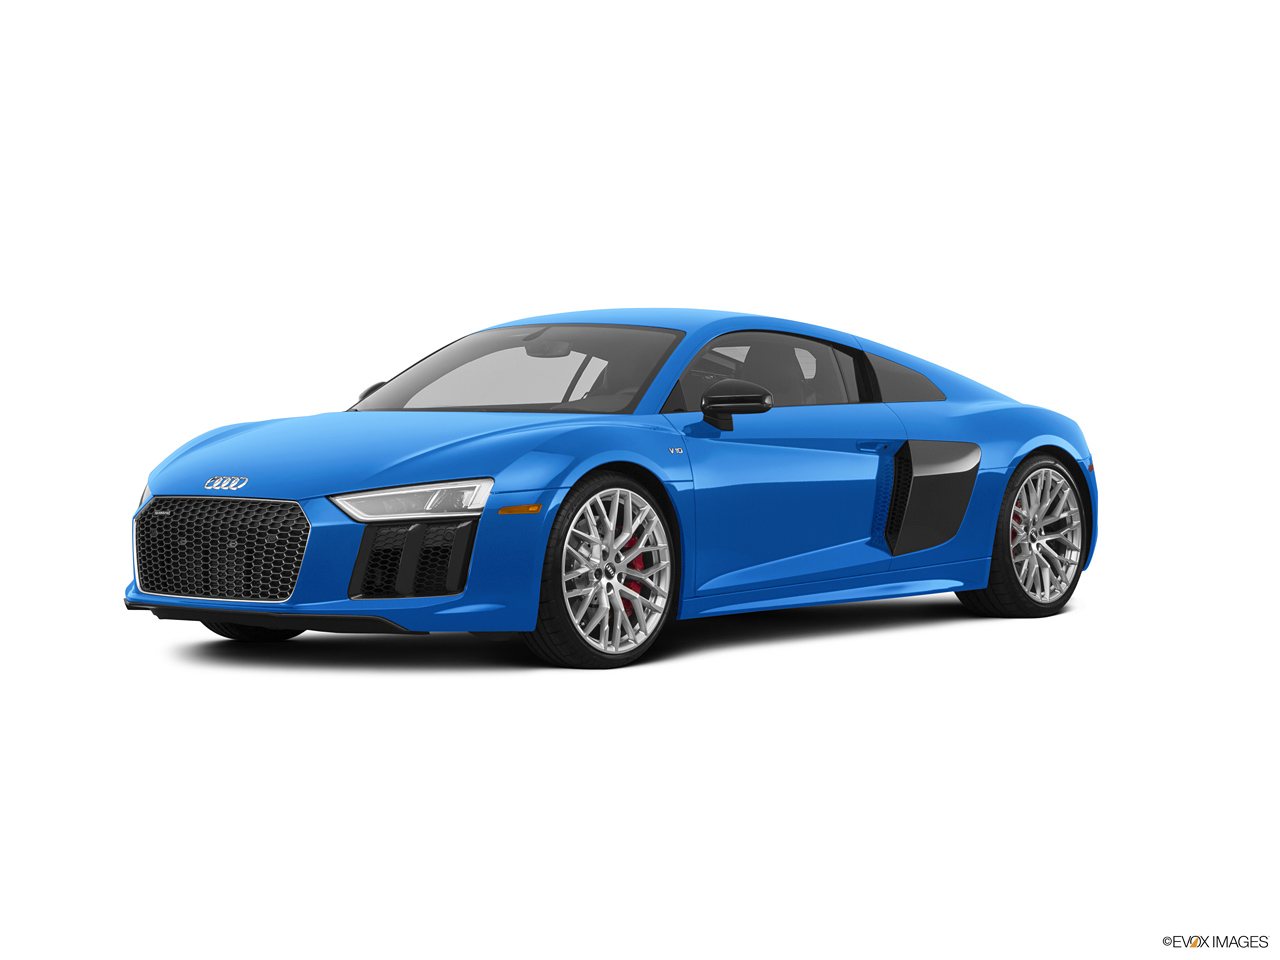 car pictures list for audi r8 coupe 2018 5 2 v10 plus kuwait yallamotor. Black Bedroom Furniture Sets. Home Design Ideas